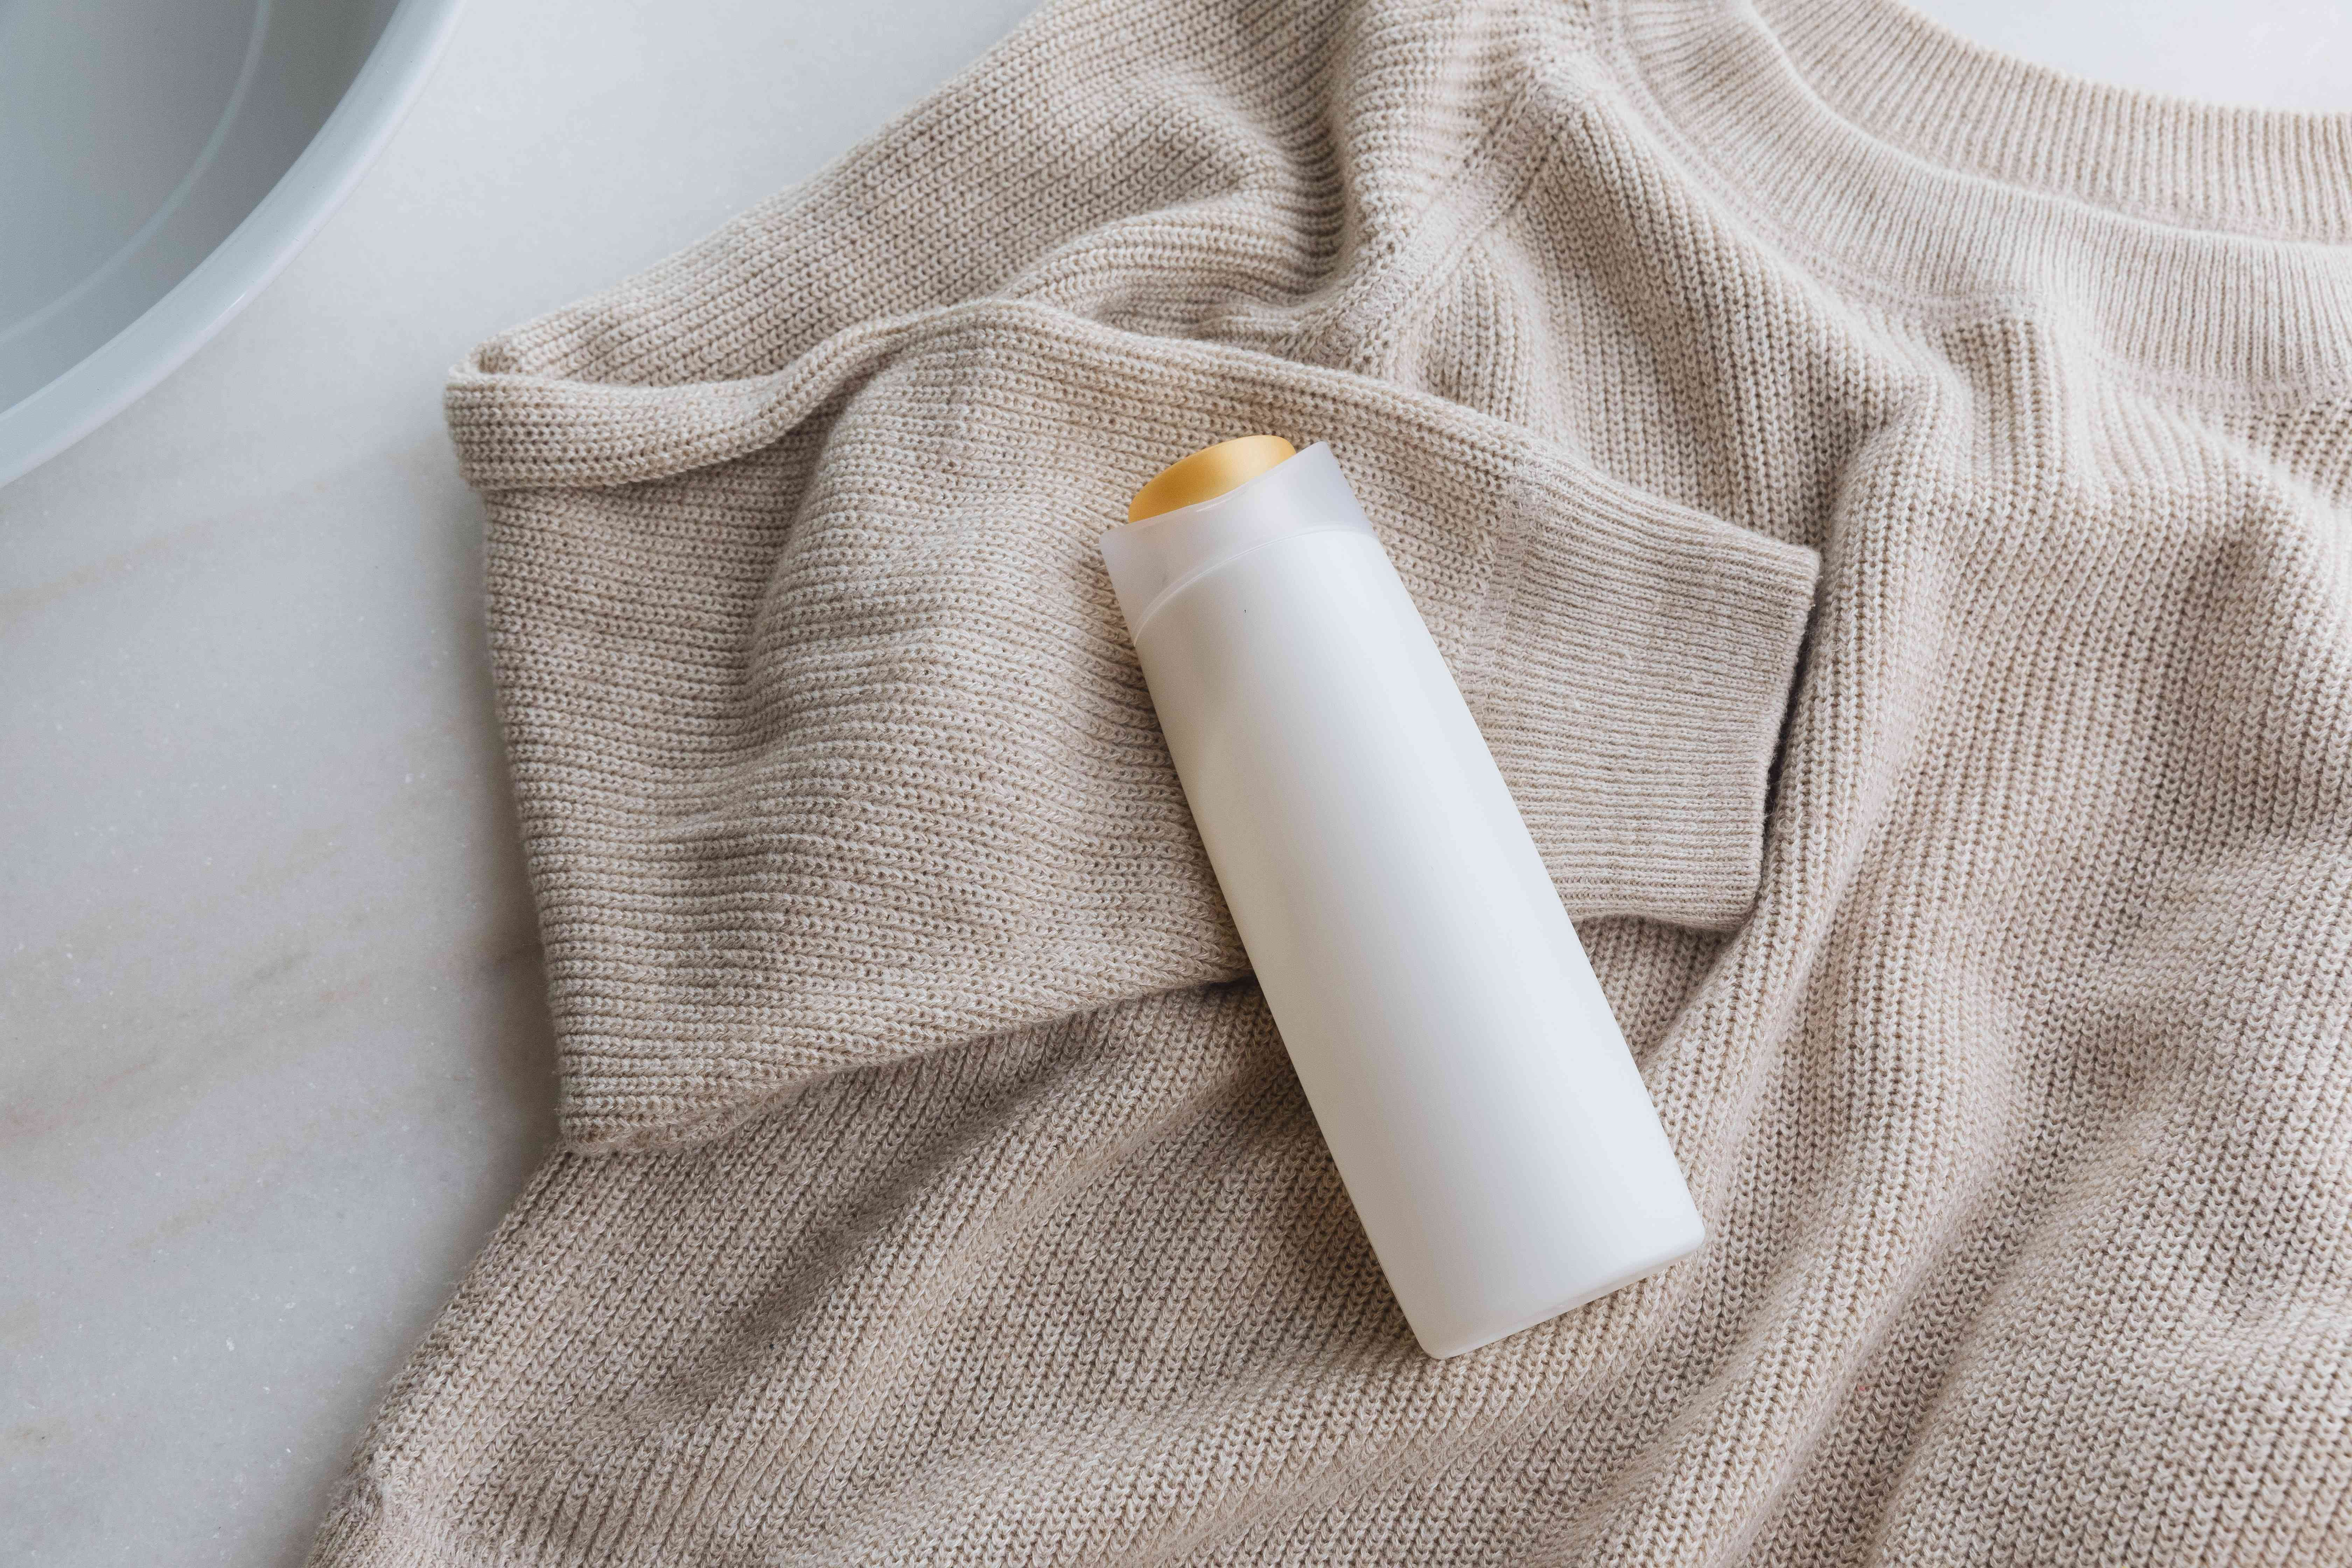 using hair conditioner to unshrink a sweater